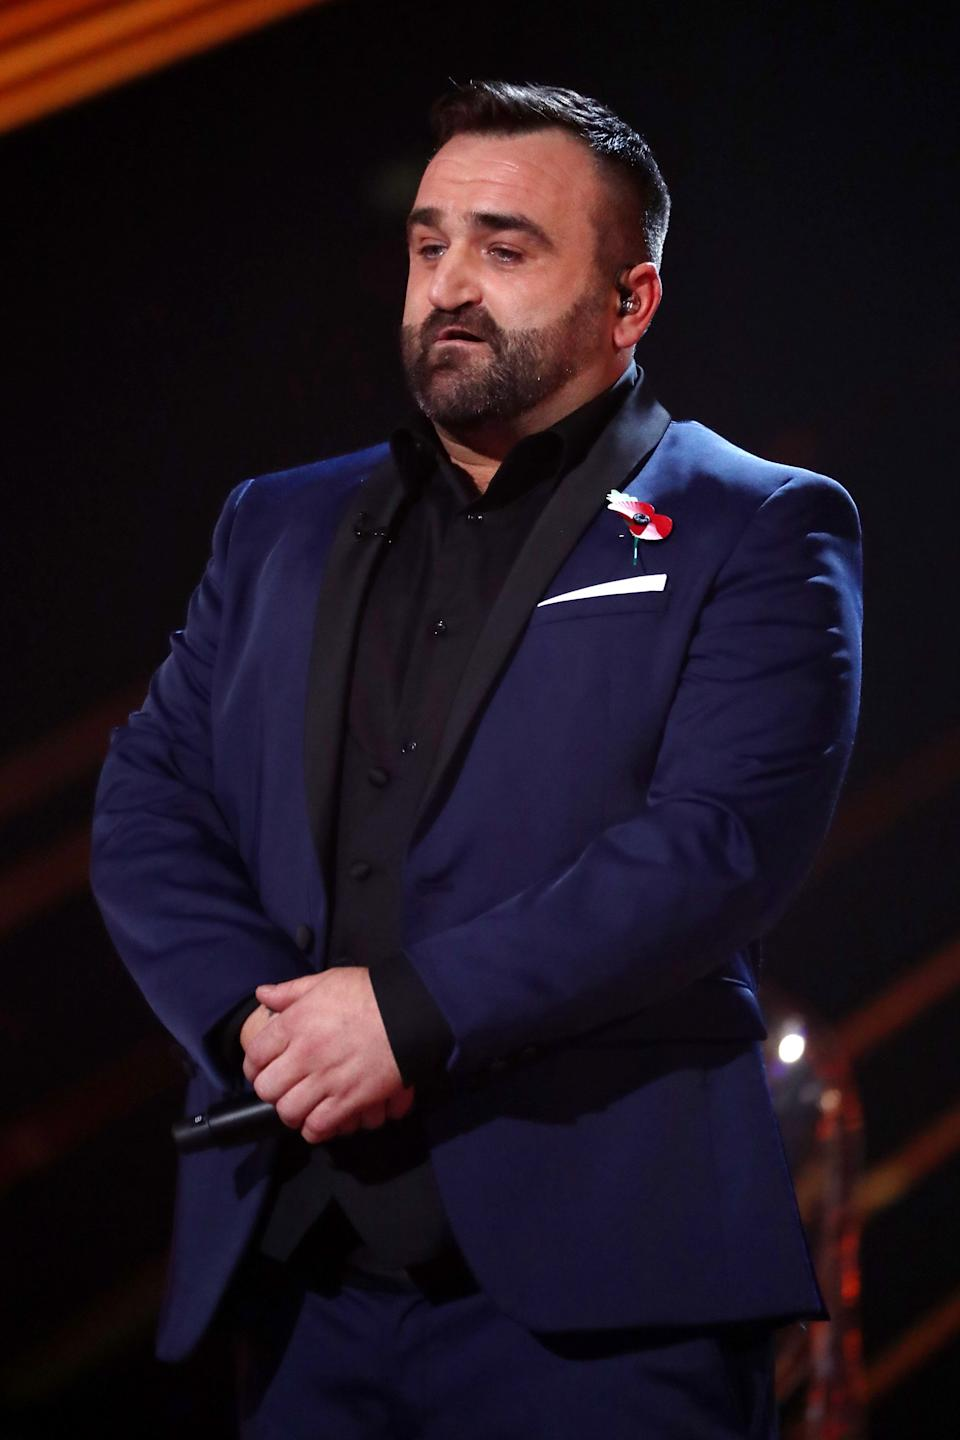 Danny Tetley on The X Factor in 2018 (Photo: Dymond/Thames/Syco/Shutterstock)